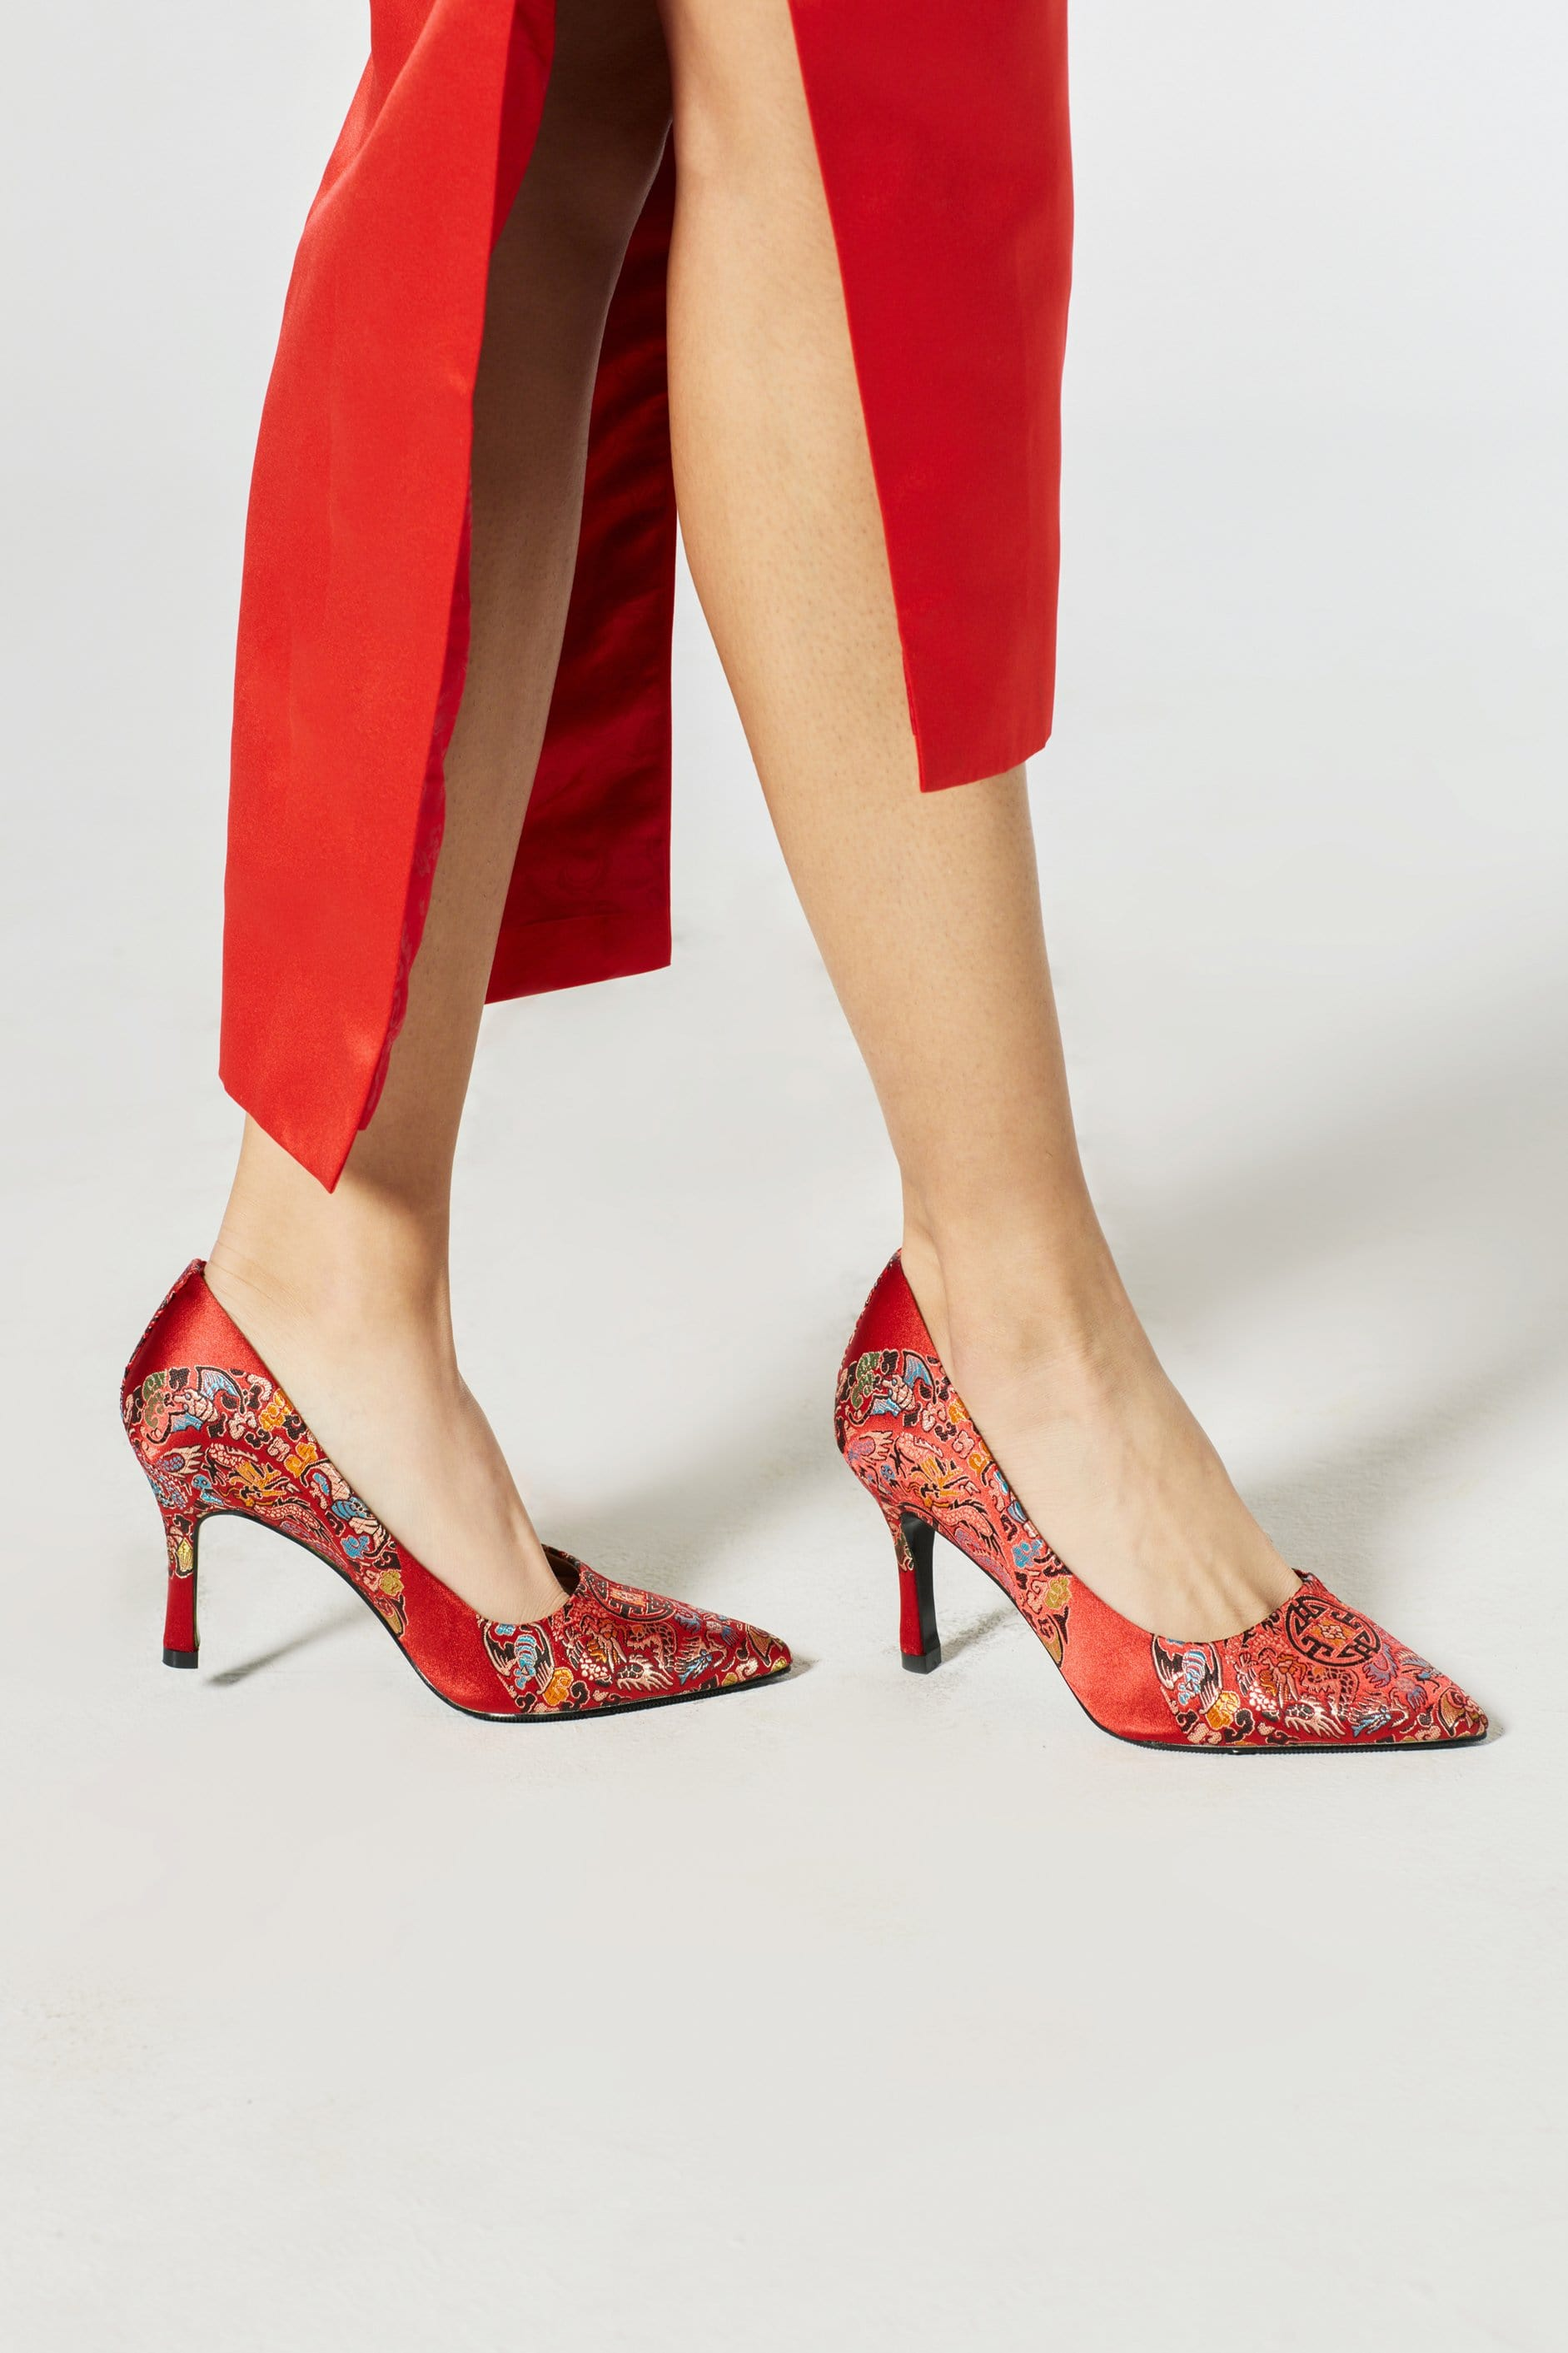 Waverly Brocade Pumps - Accessories - East Meets Dress